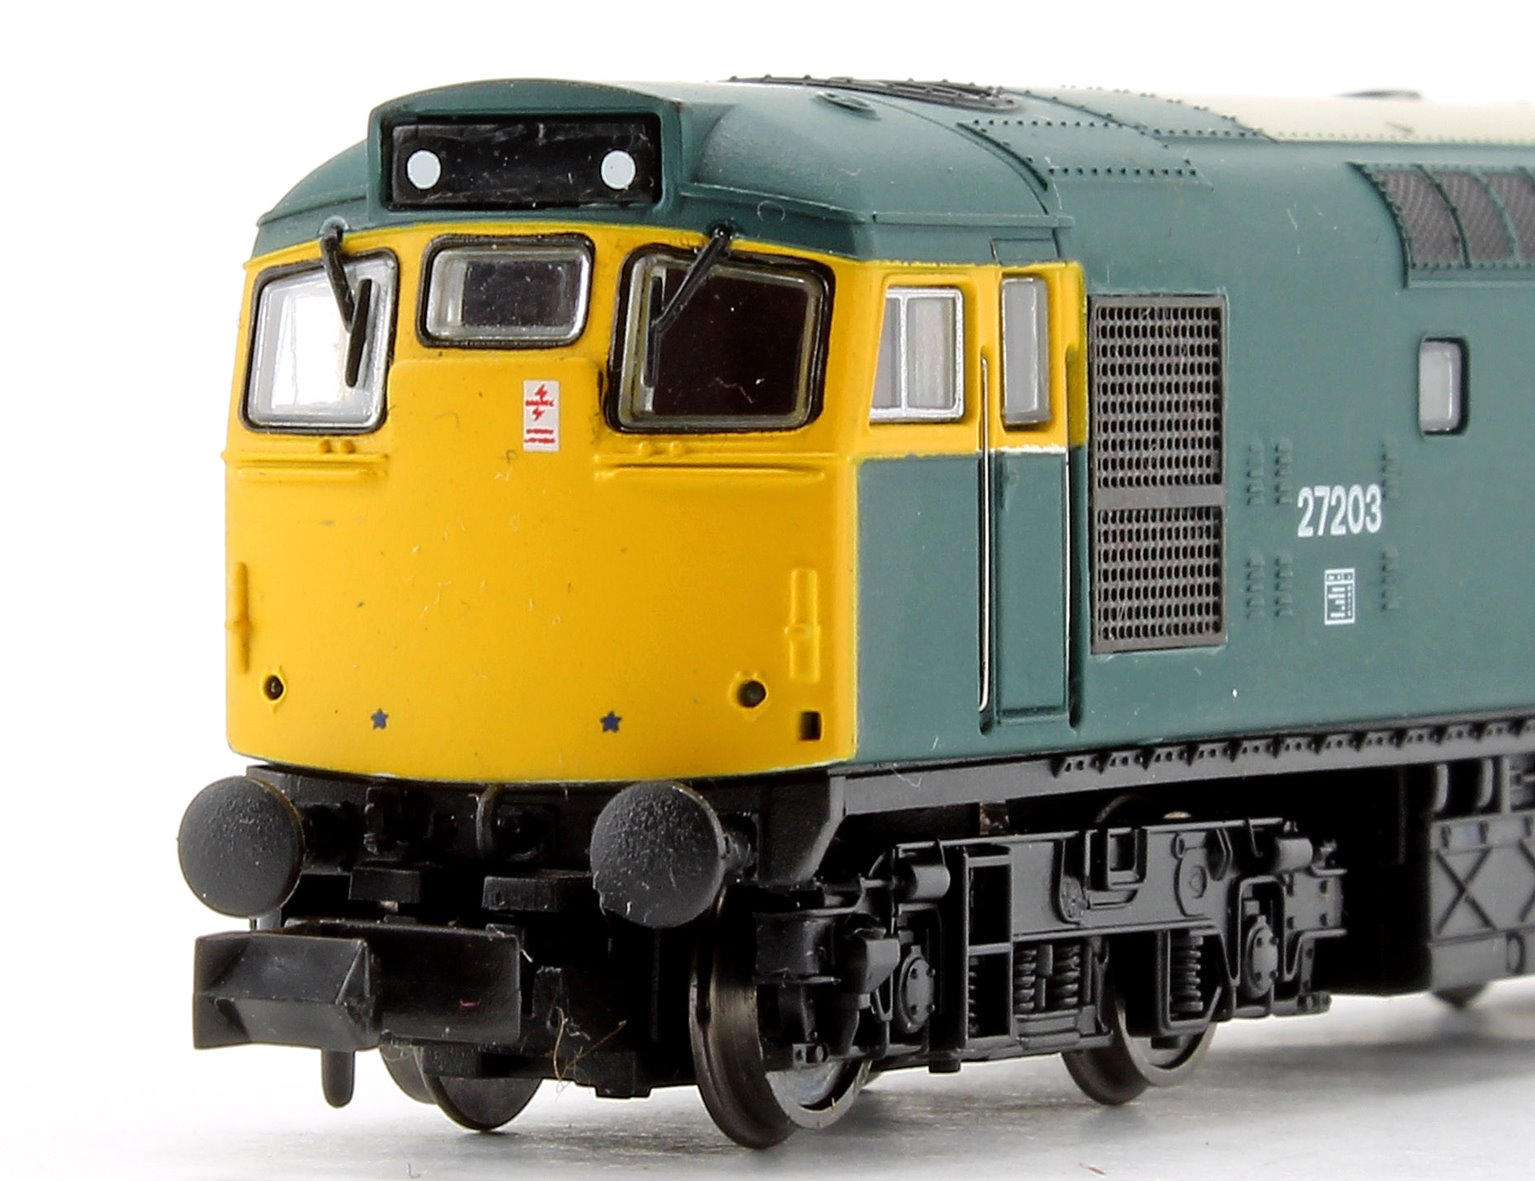 Class 27 203 BR Blue Full Yellow Ends Diesel Locomotive (Unpowered Dummy)